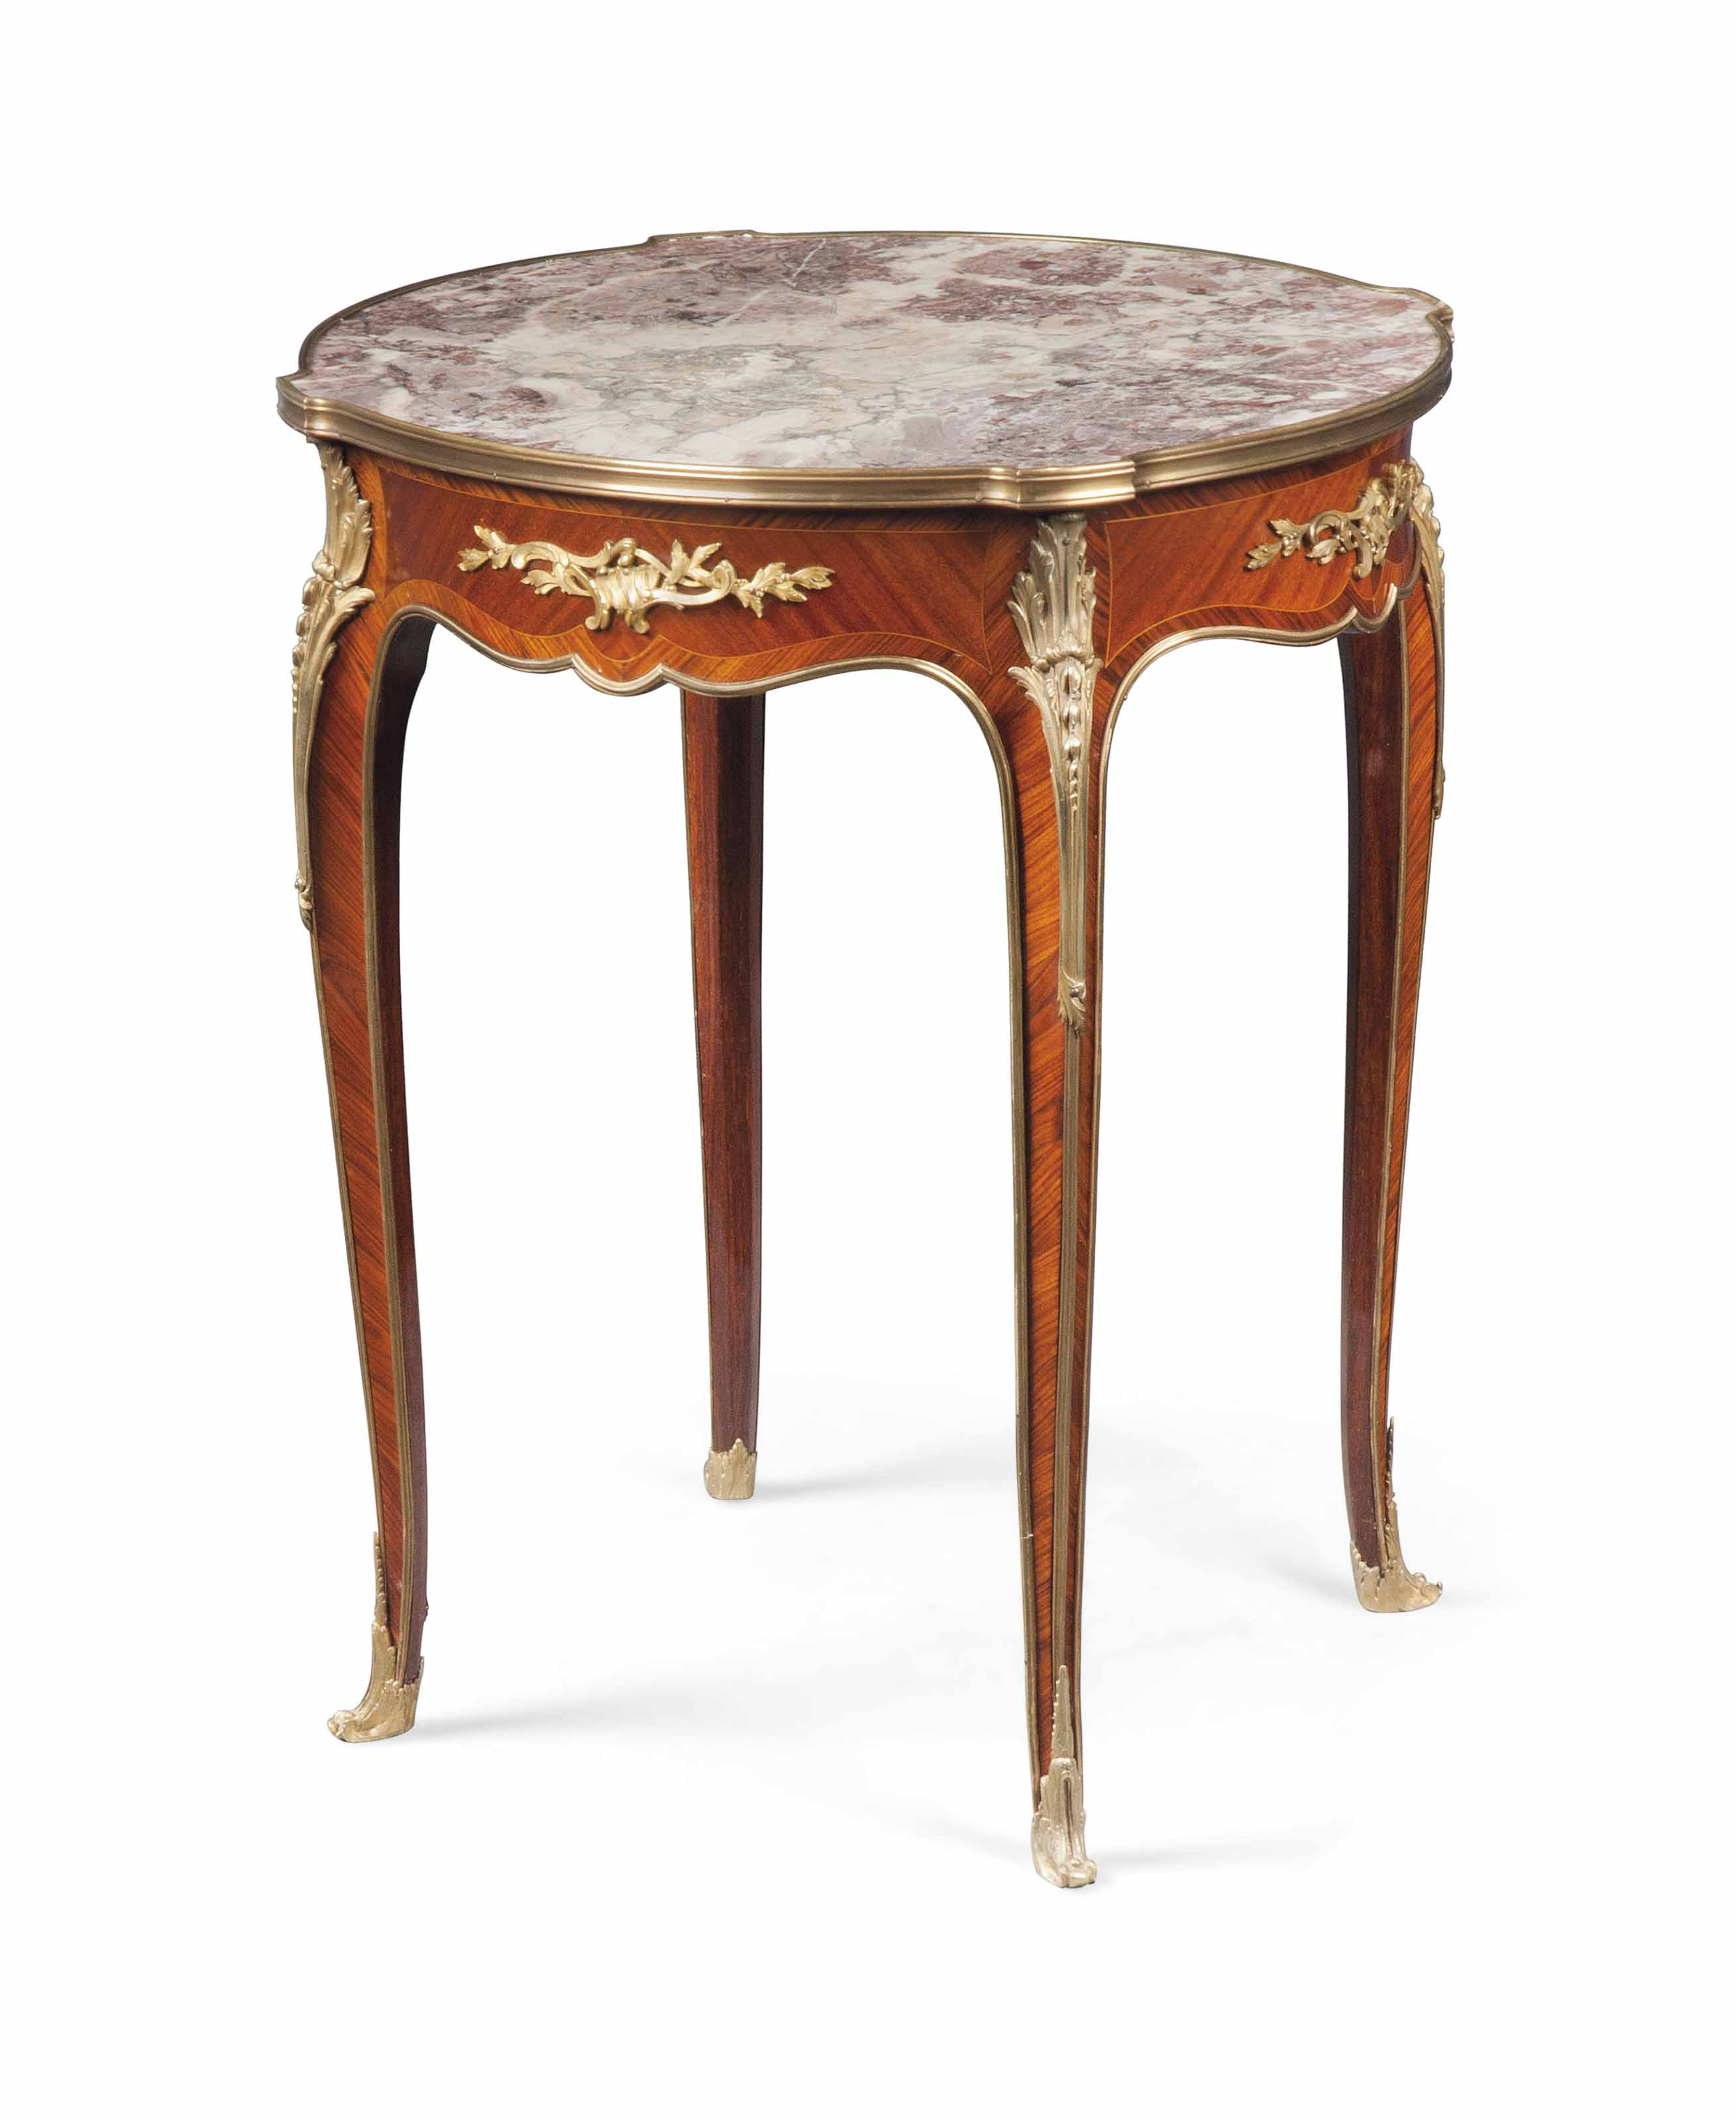 A FRENCH ORMOLU-MOUNTED KINGWOOD AND BOIS SATINE GUERIDON